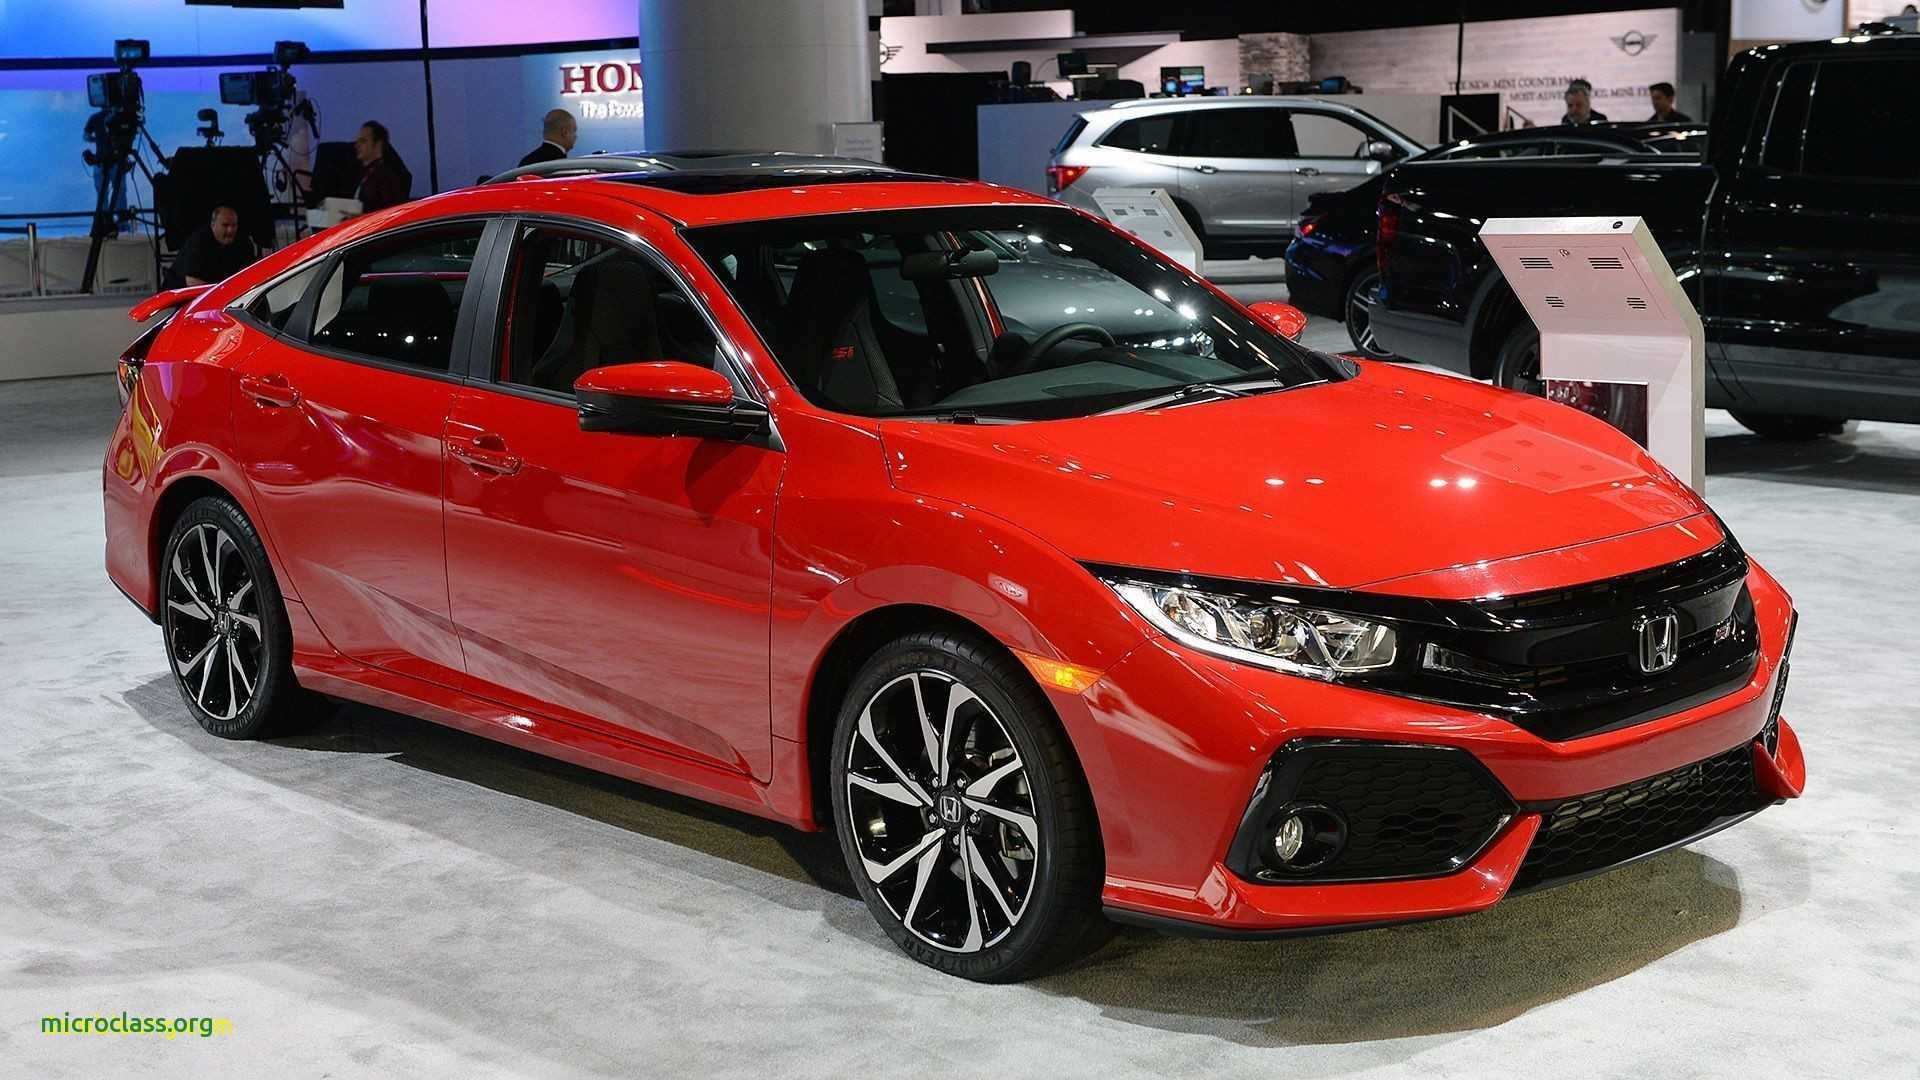 90 The Best 2020 Honda Civic Coupe Redesign